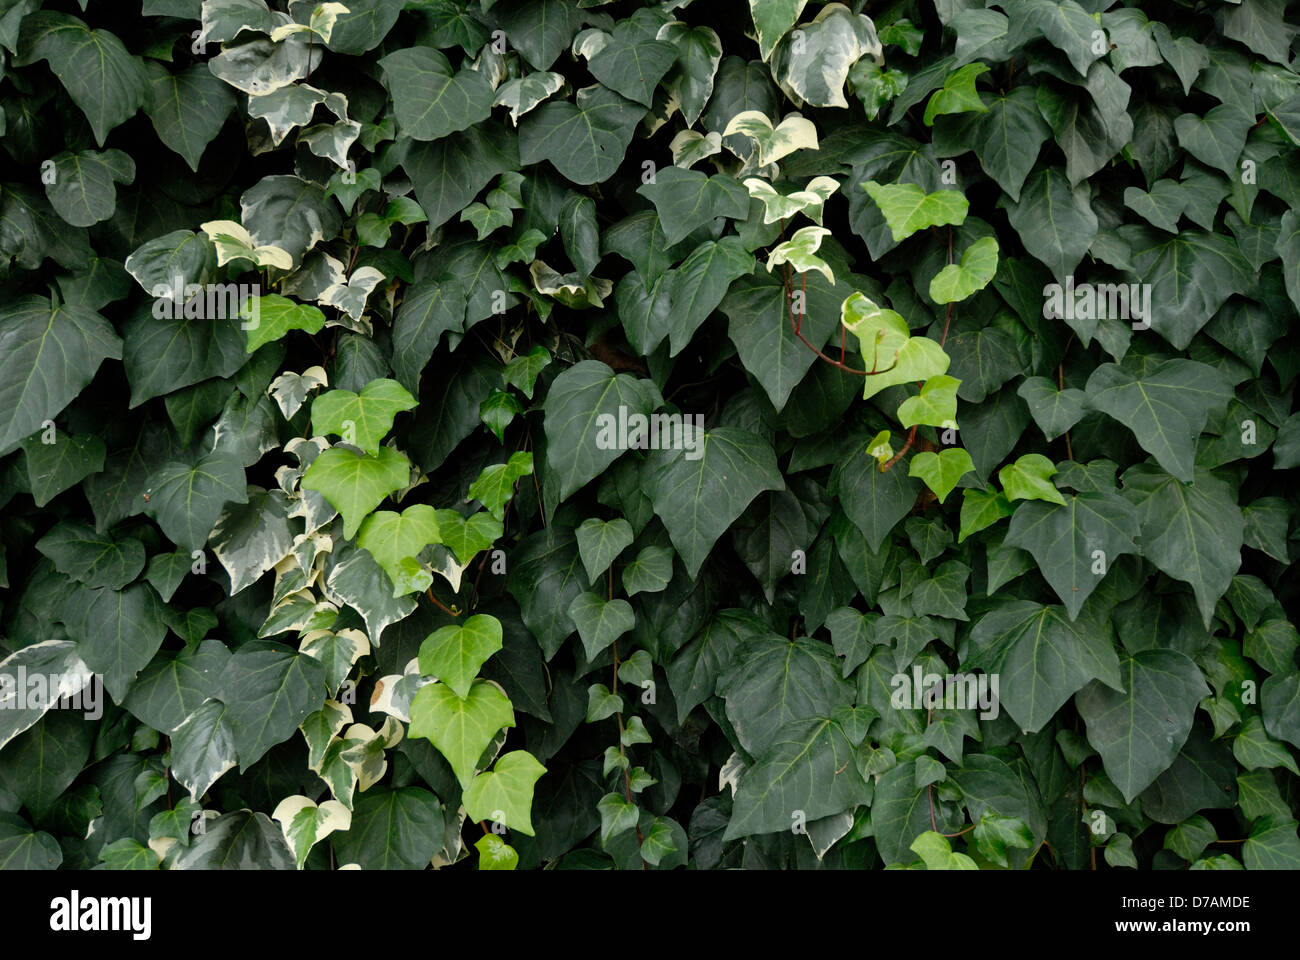 varieties of green climbing ivy covering a city wall Stock Photo